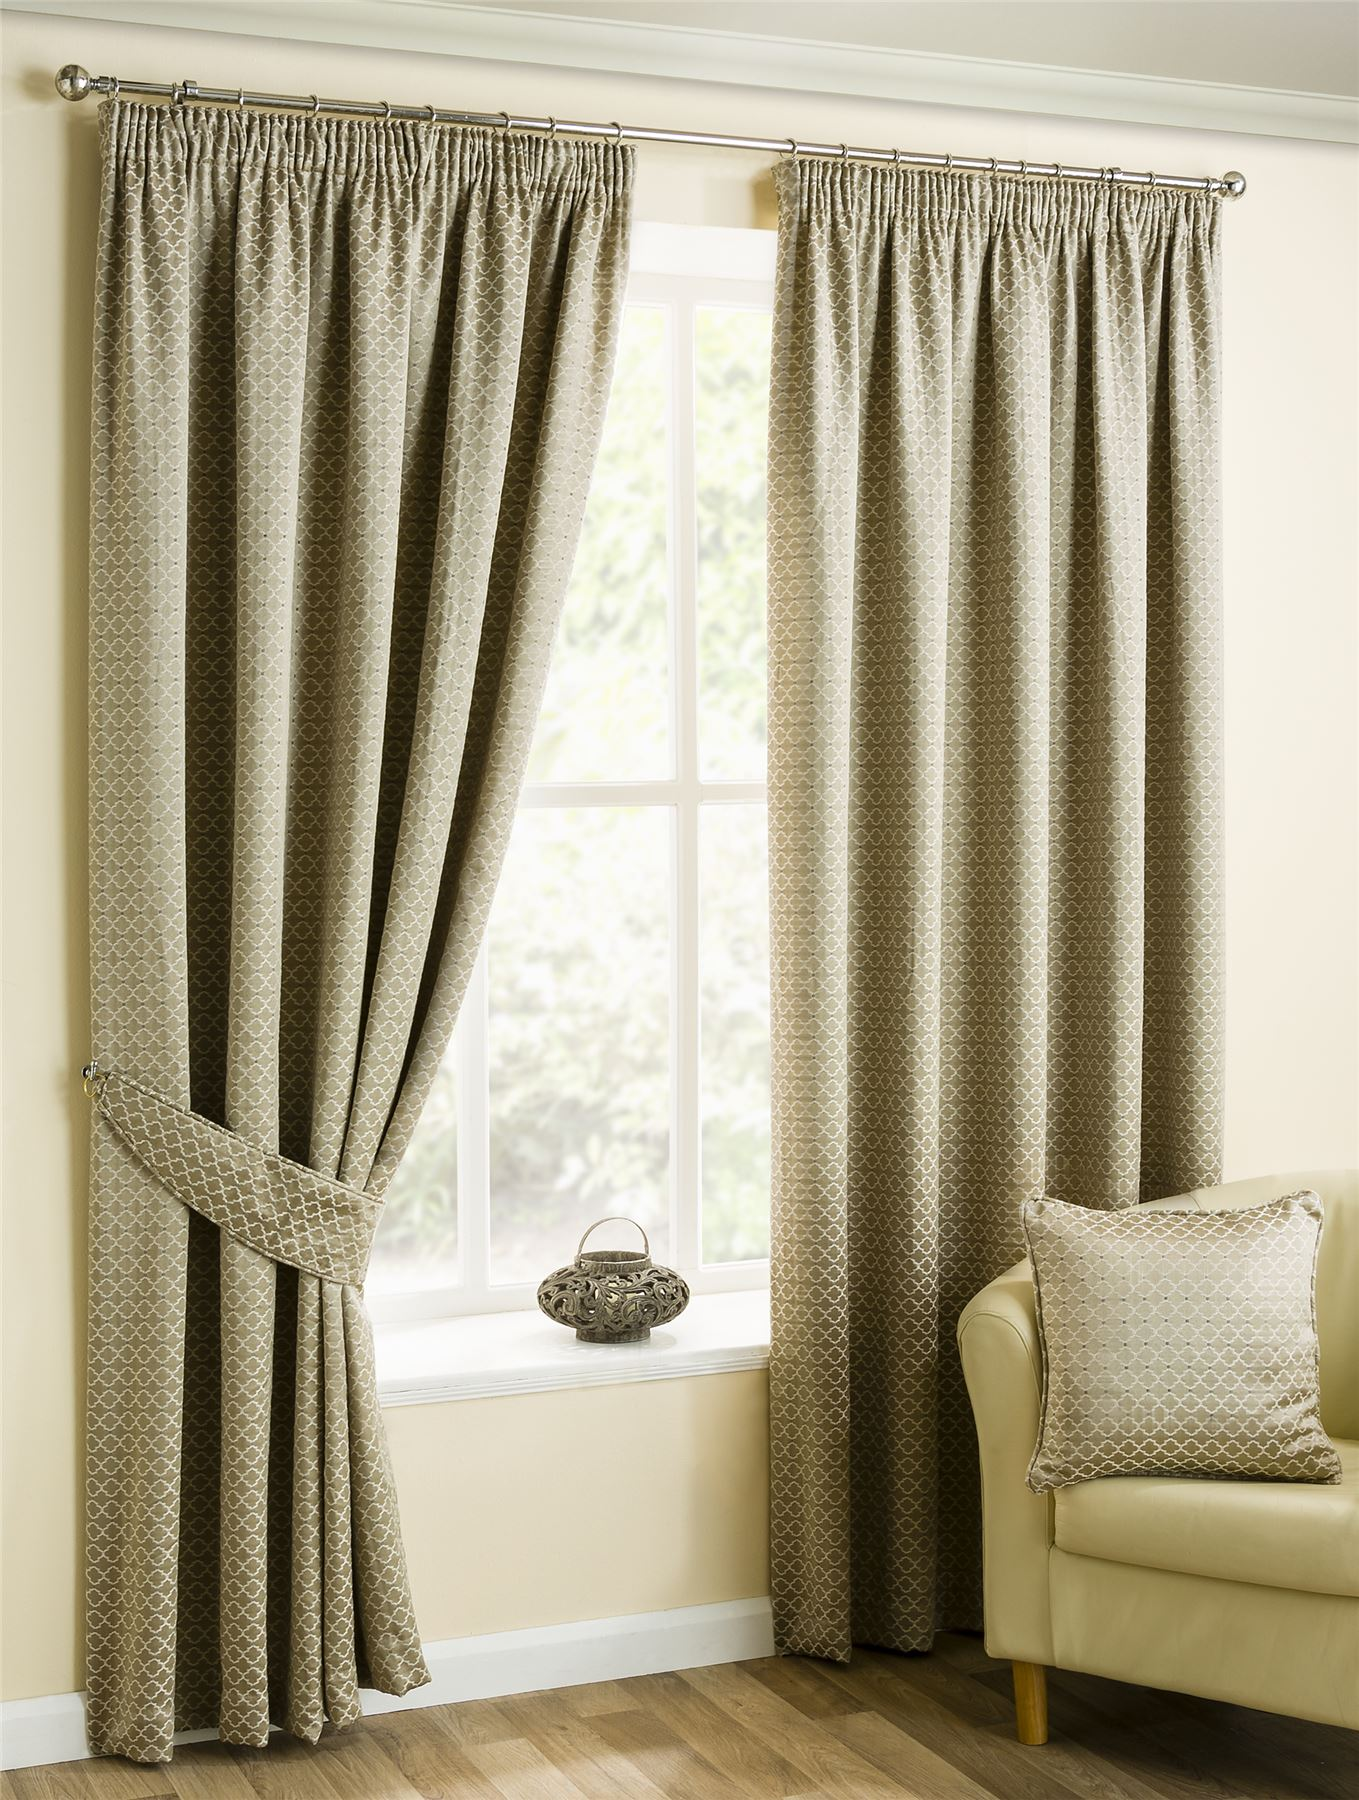 made pin valance shetland and backs available matching tie curtains with cushions also ready curtain